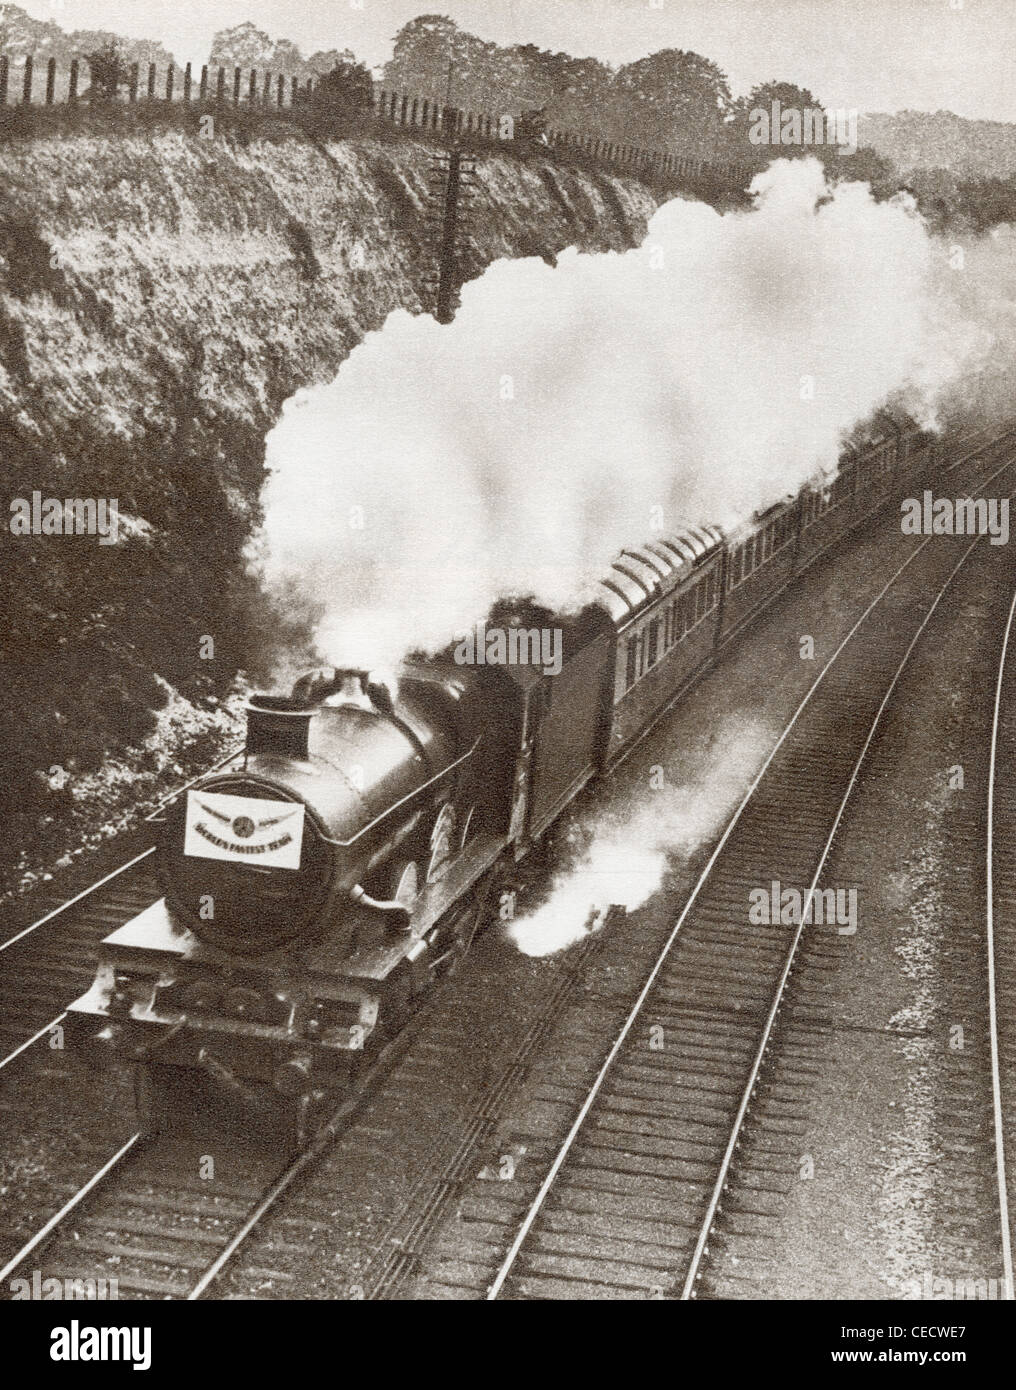 The Cheltenham Flyer aka The Cheltenham Spa Express train in 1931. - Stock Image